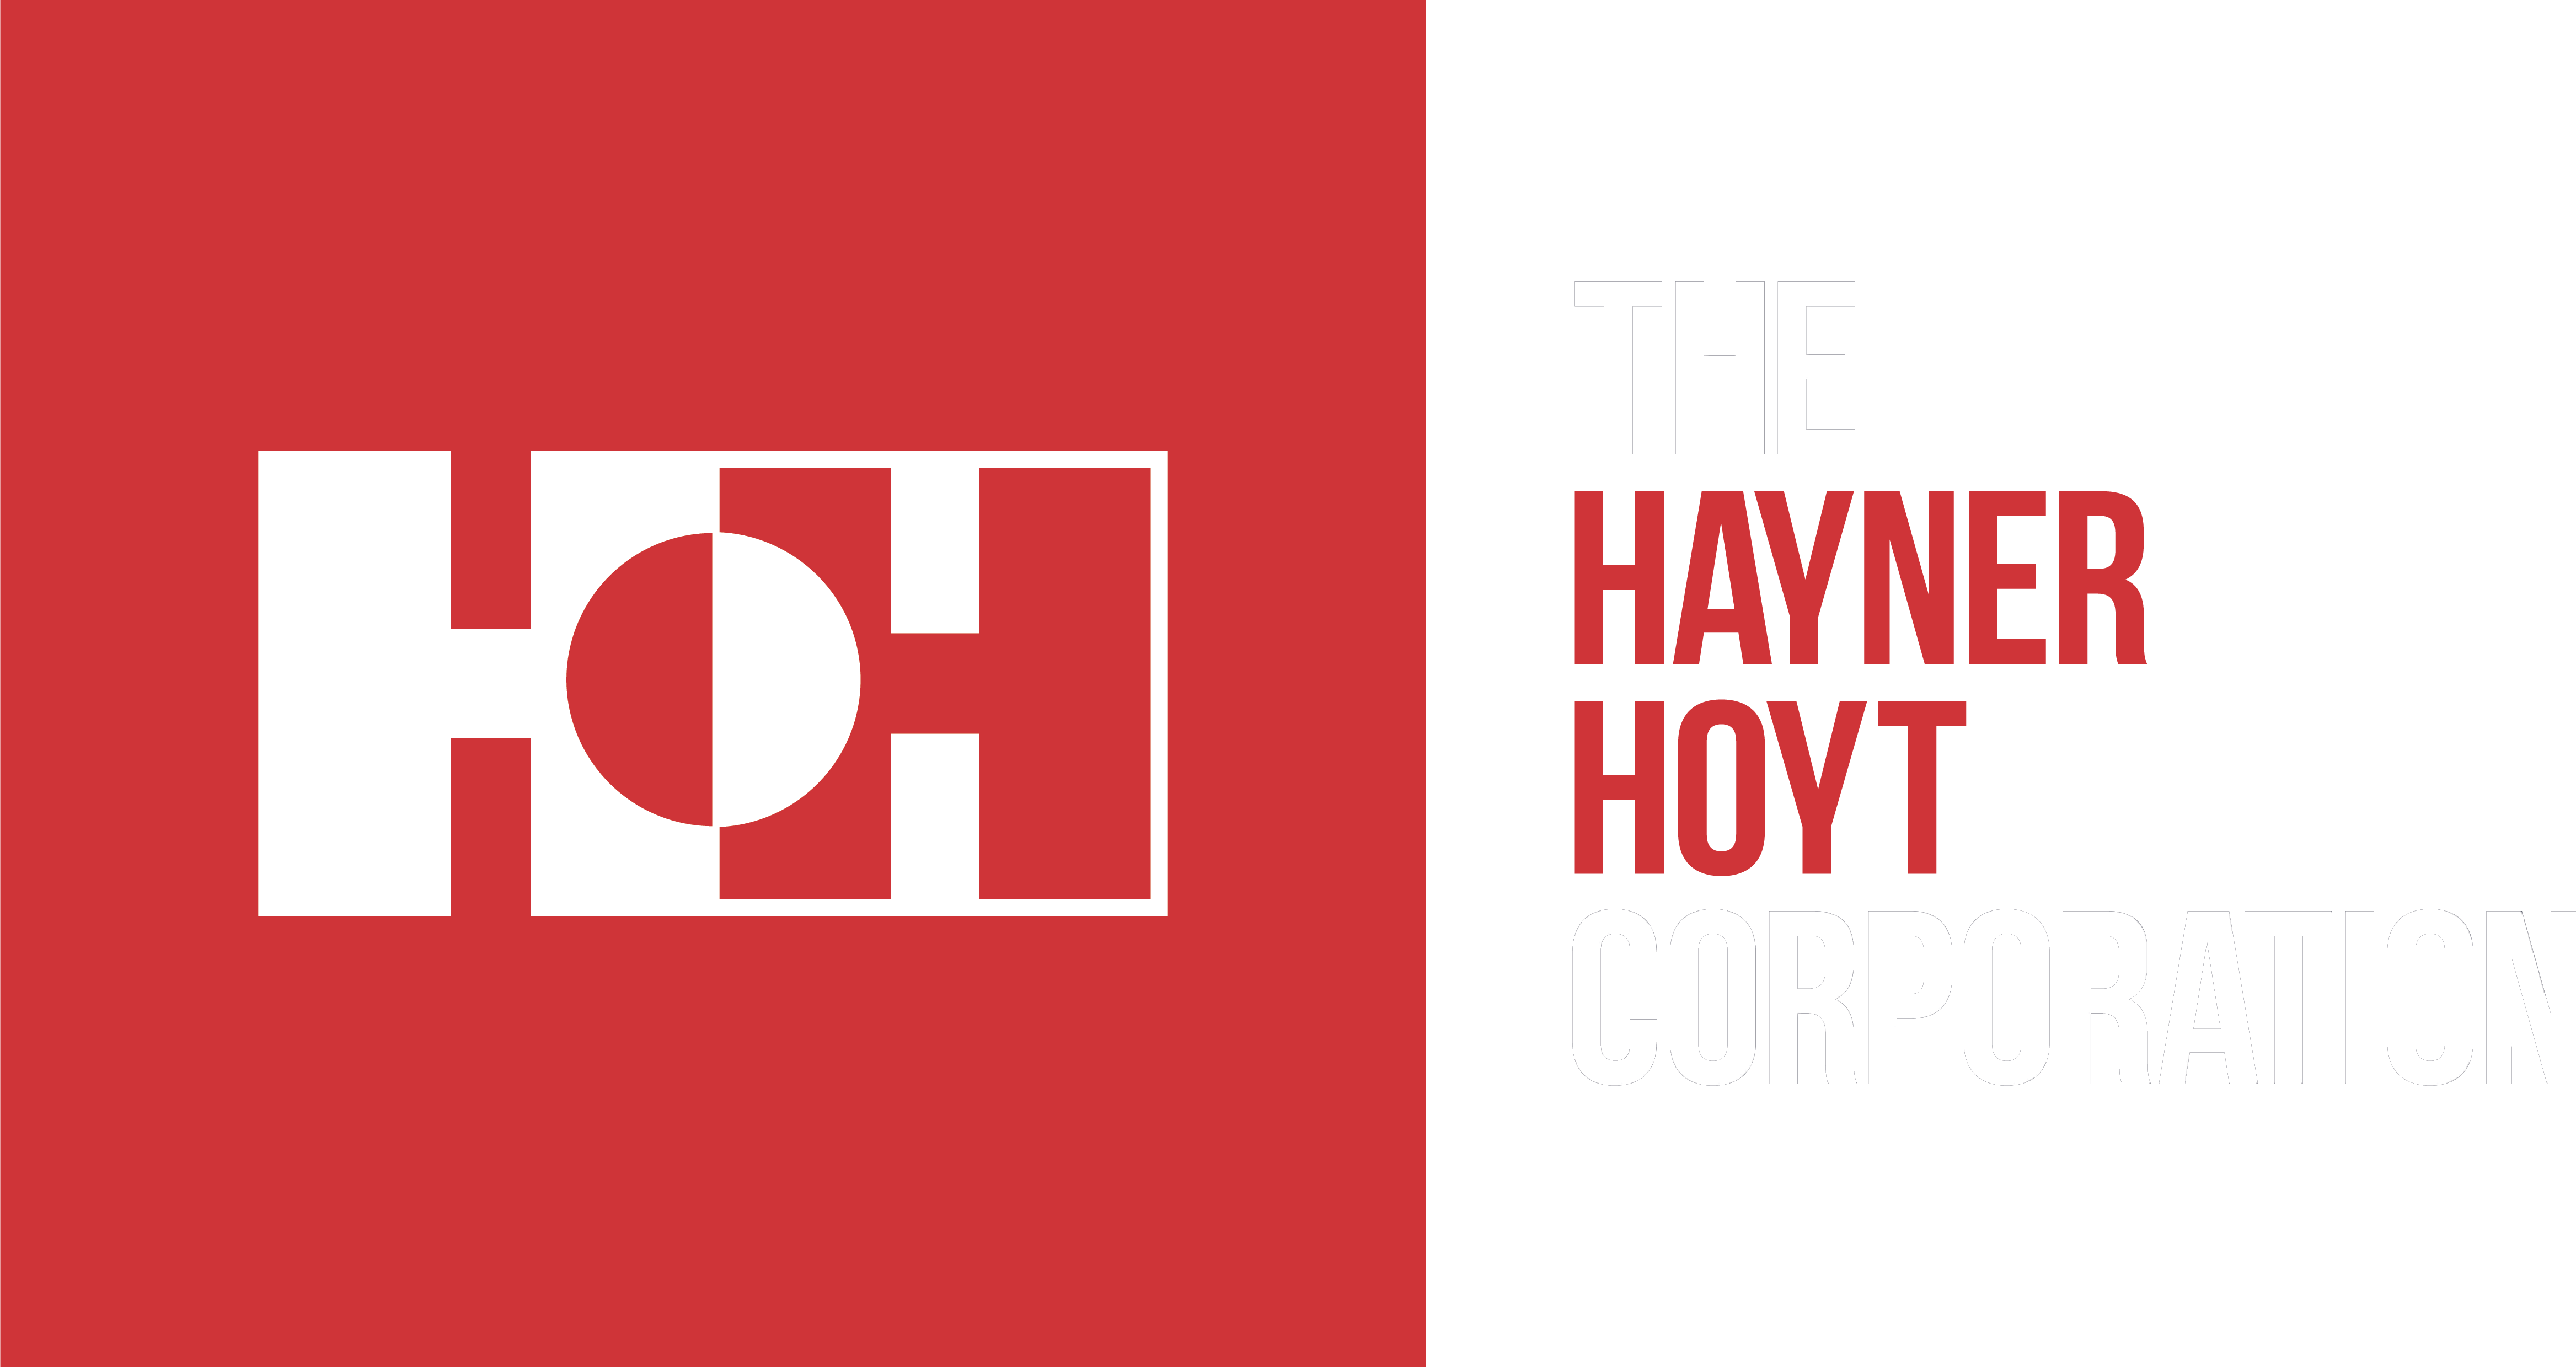 The Hayner Hoyt Corporation